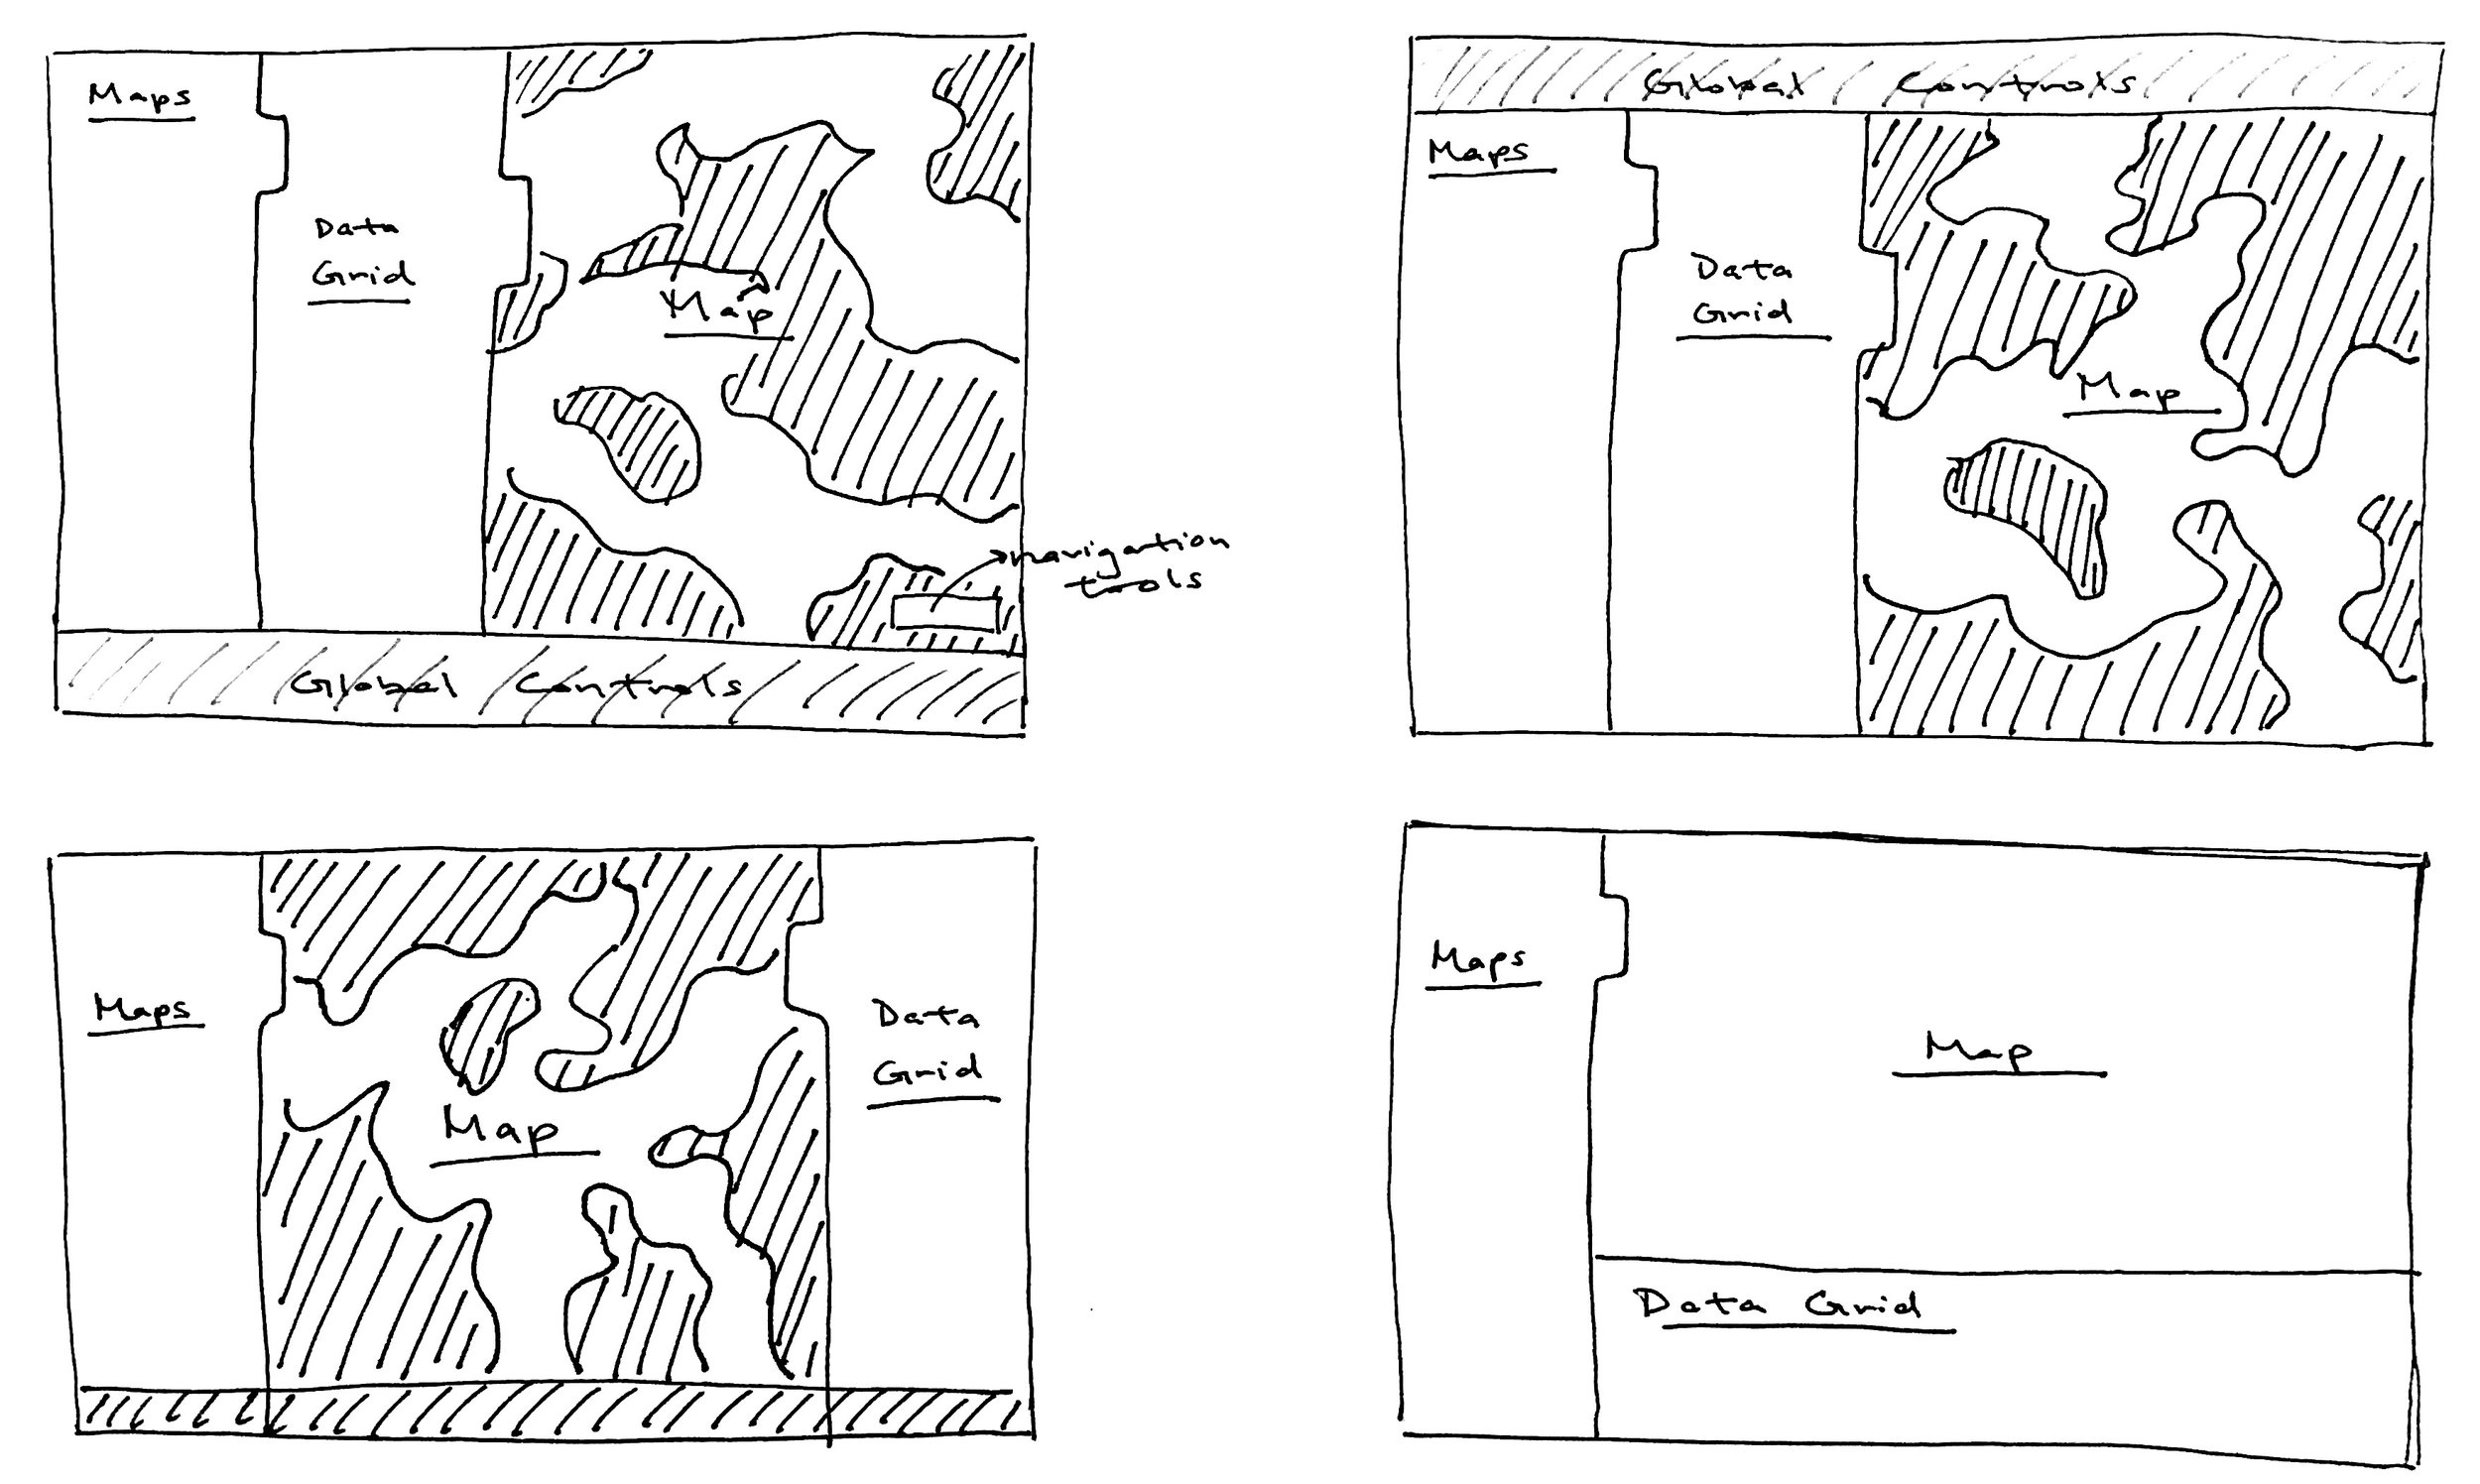 Experimenting with different locations of the data gird while trying to optimize the map's screen real estate.